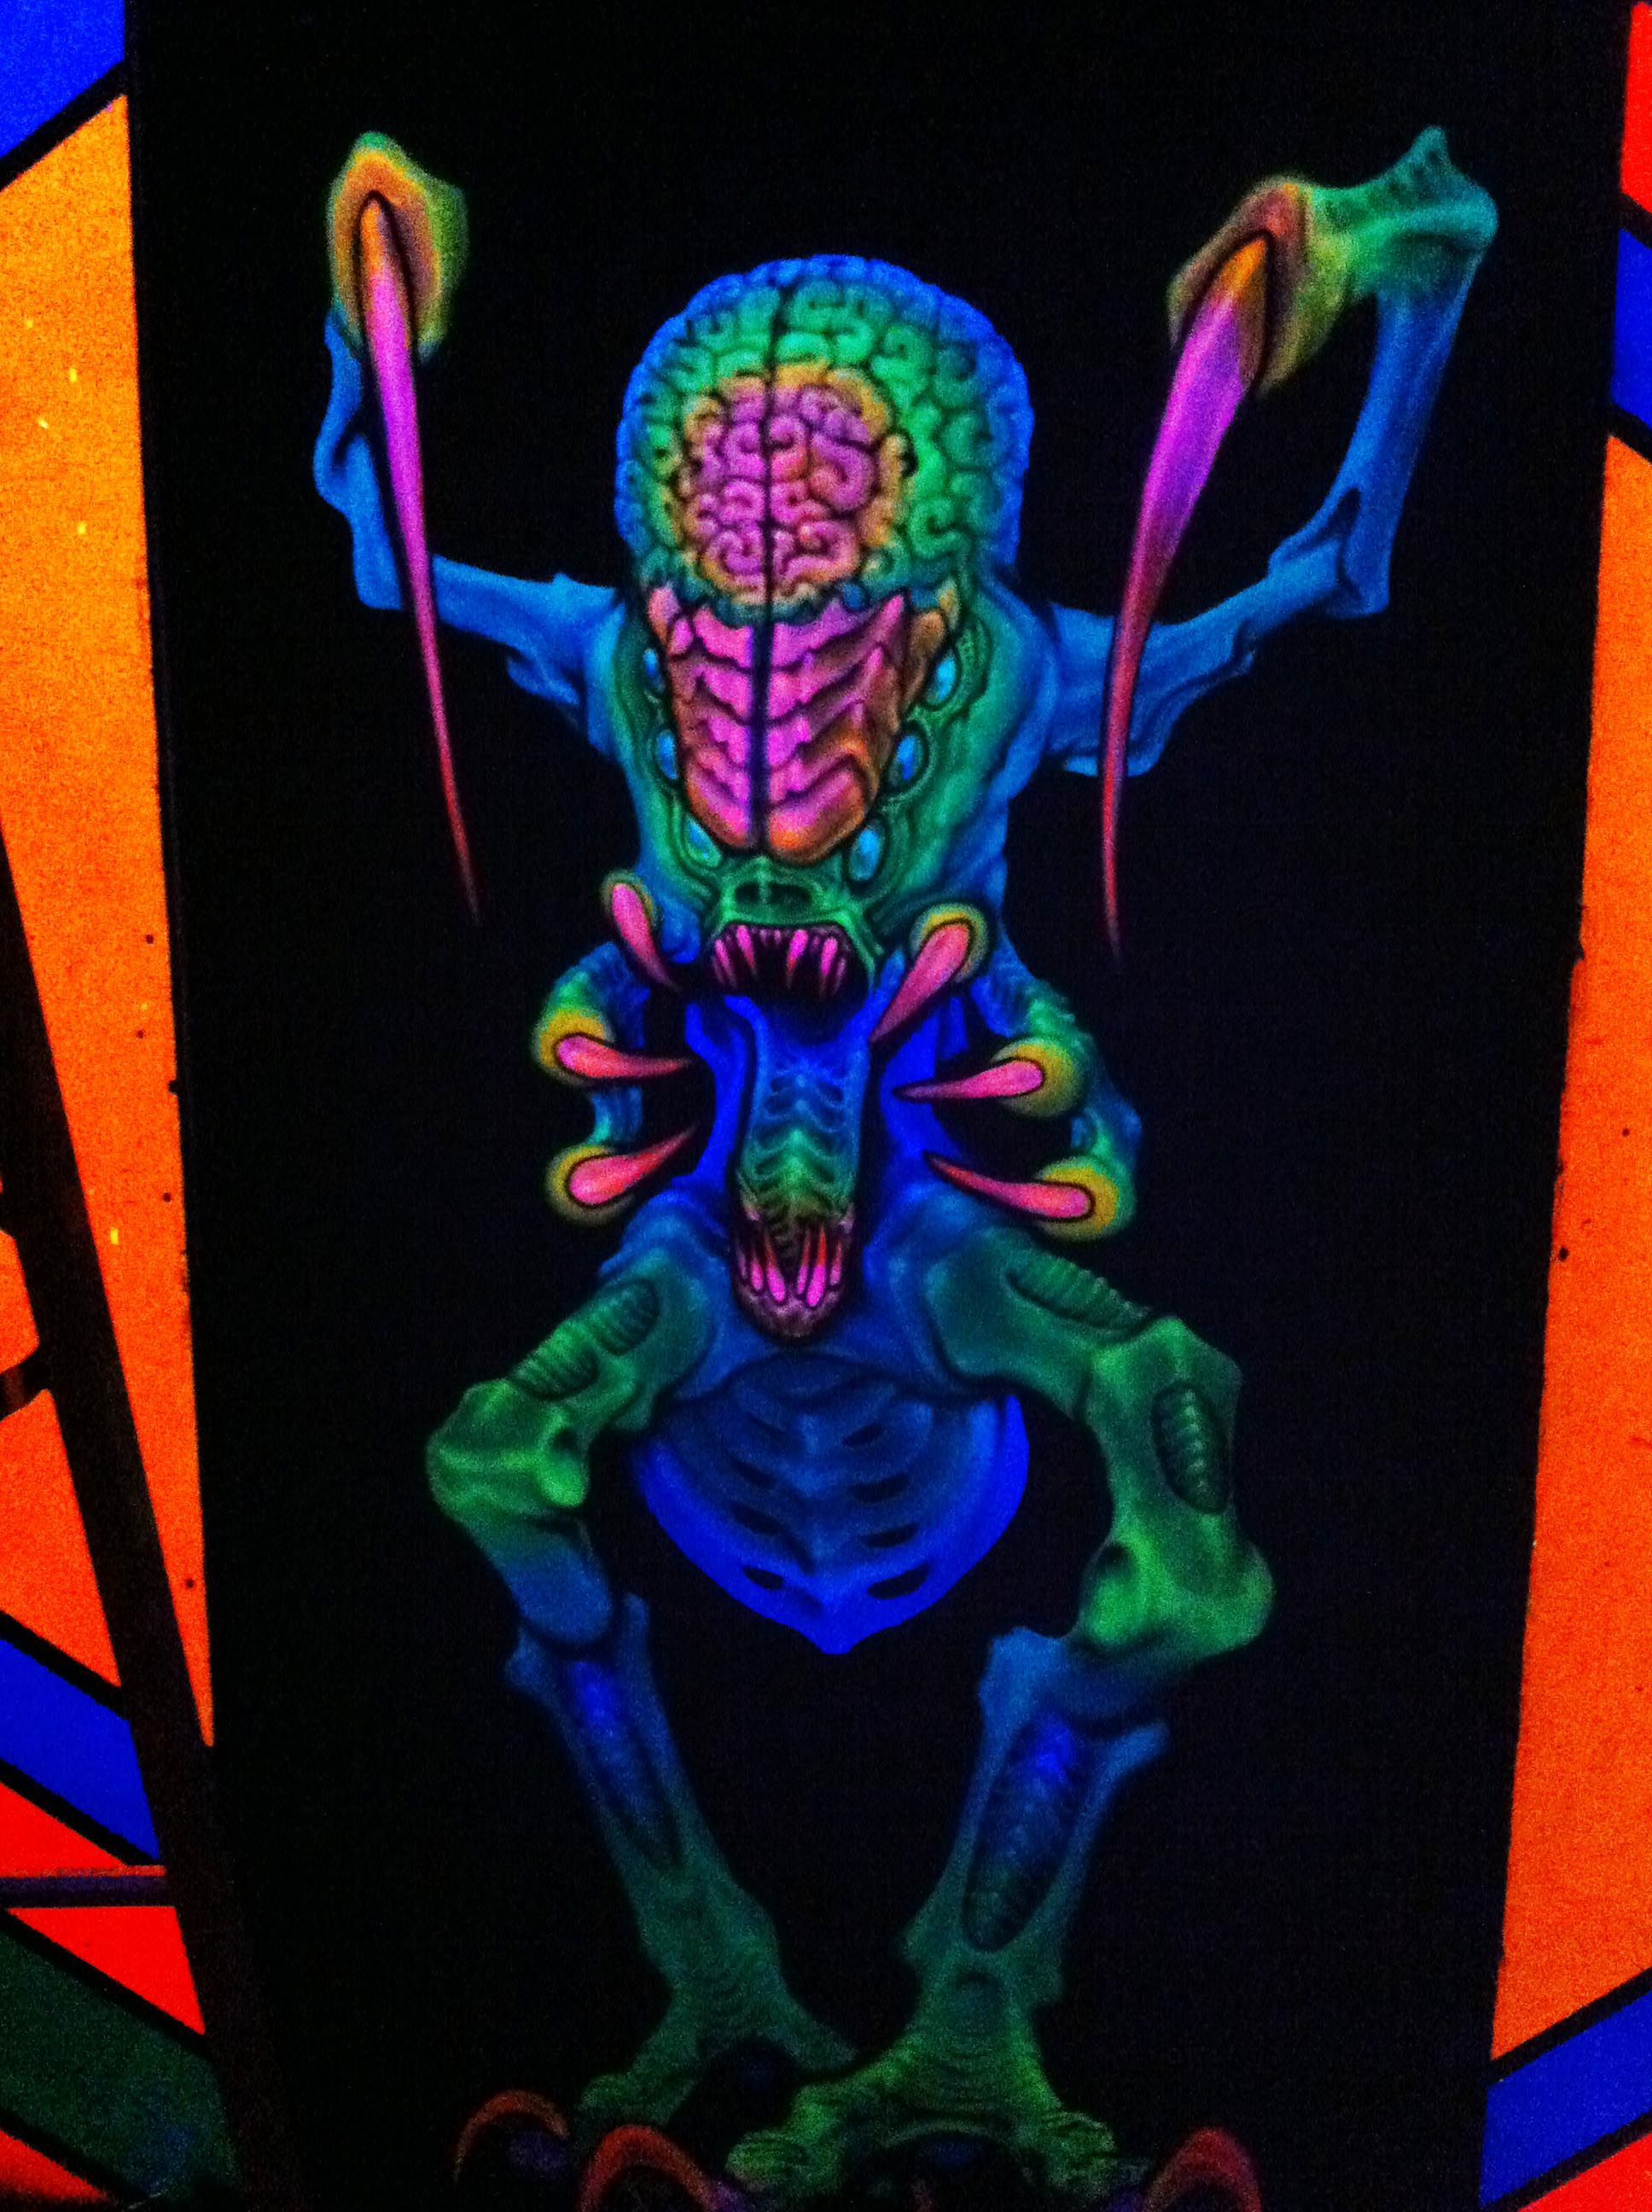 3D Art By Dutch Bihary At Haunted Nightmare Haunted Attraction